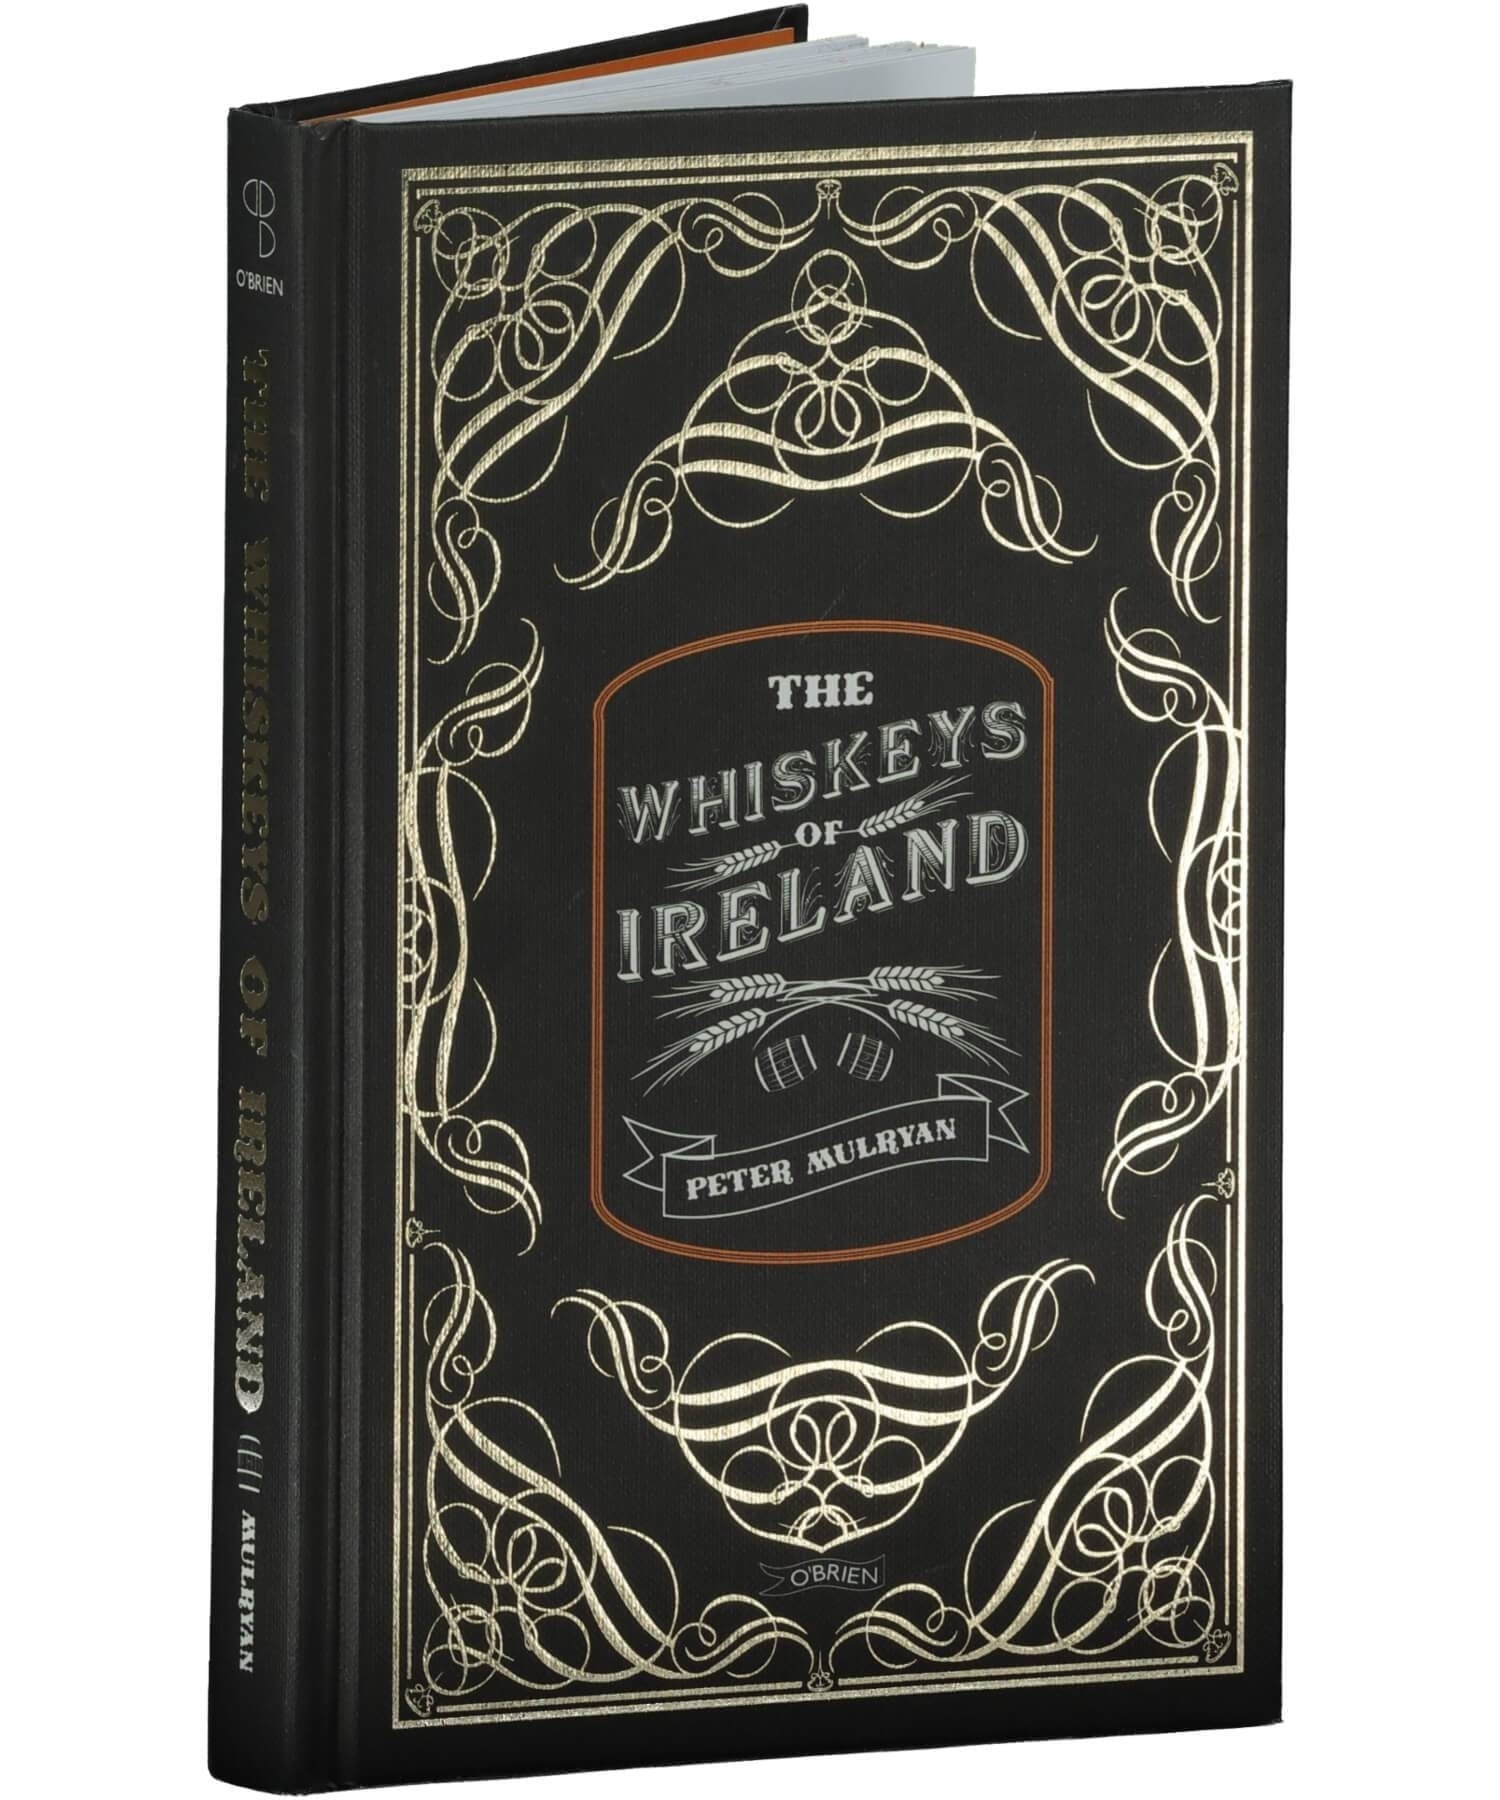 The Whiskeys of Ireland OBrien Press Books